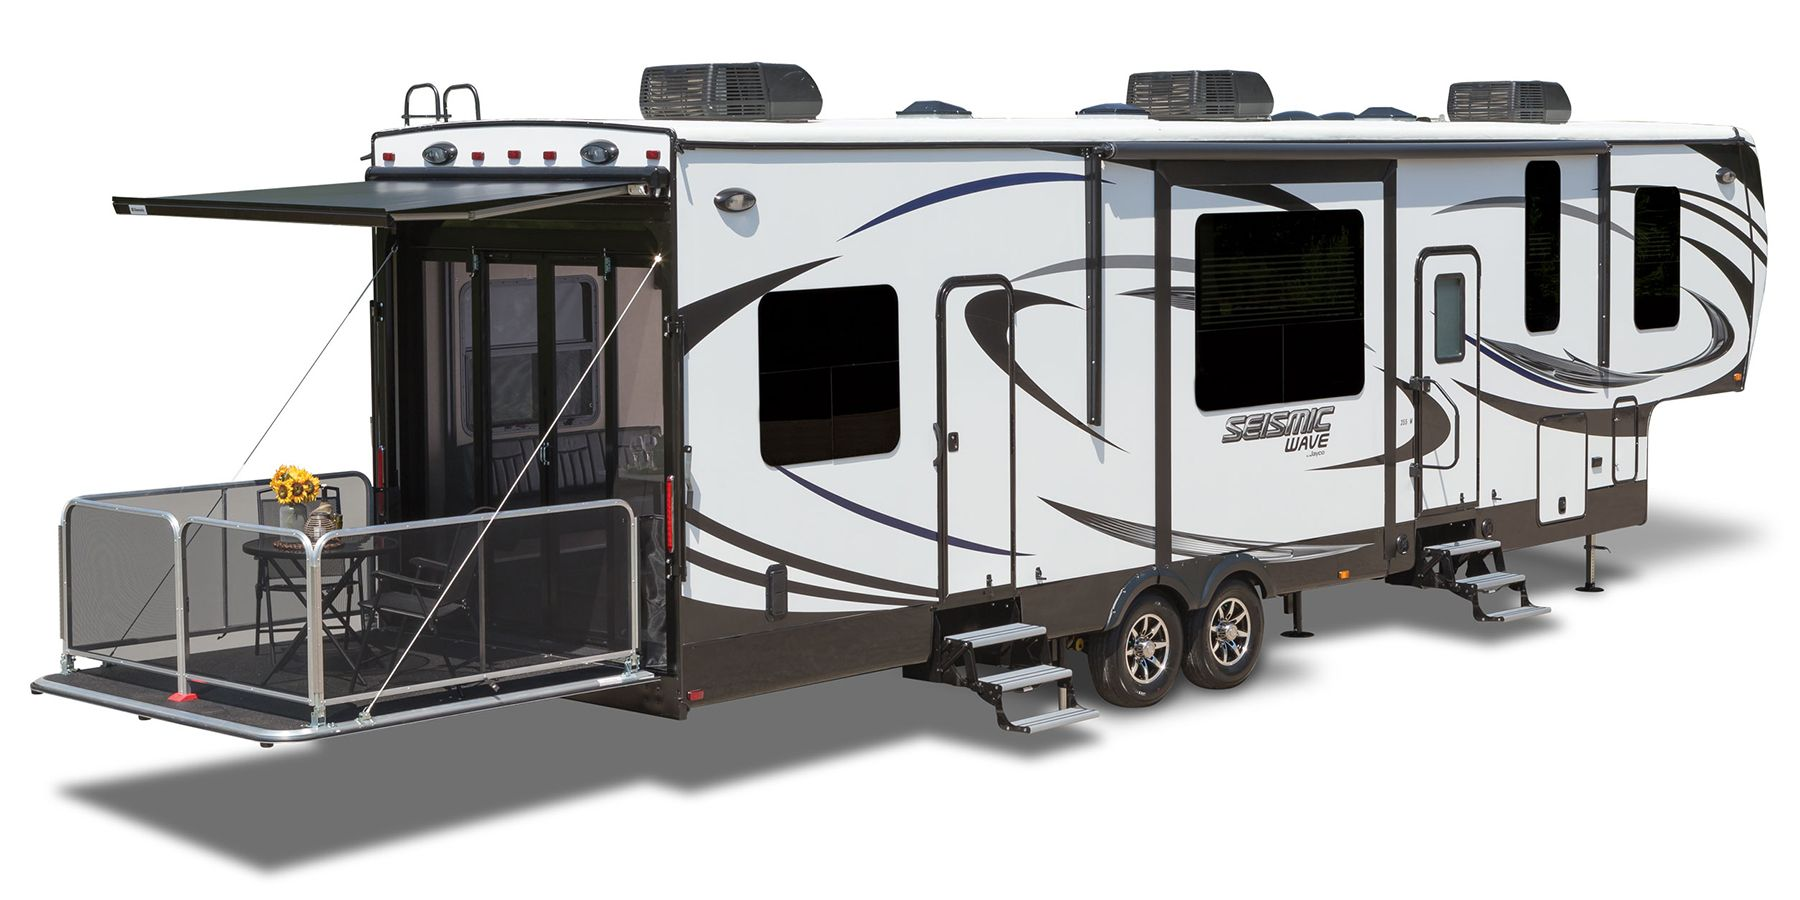 Retirement RV Living